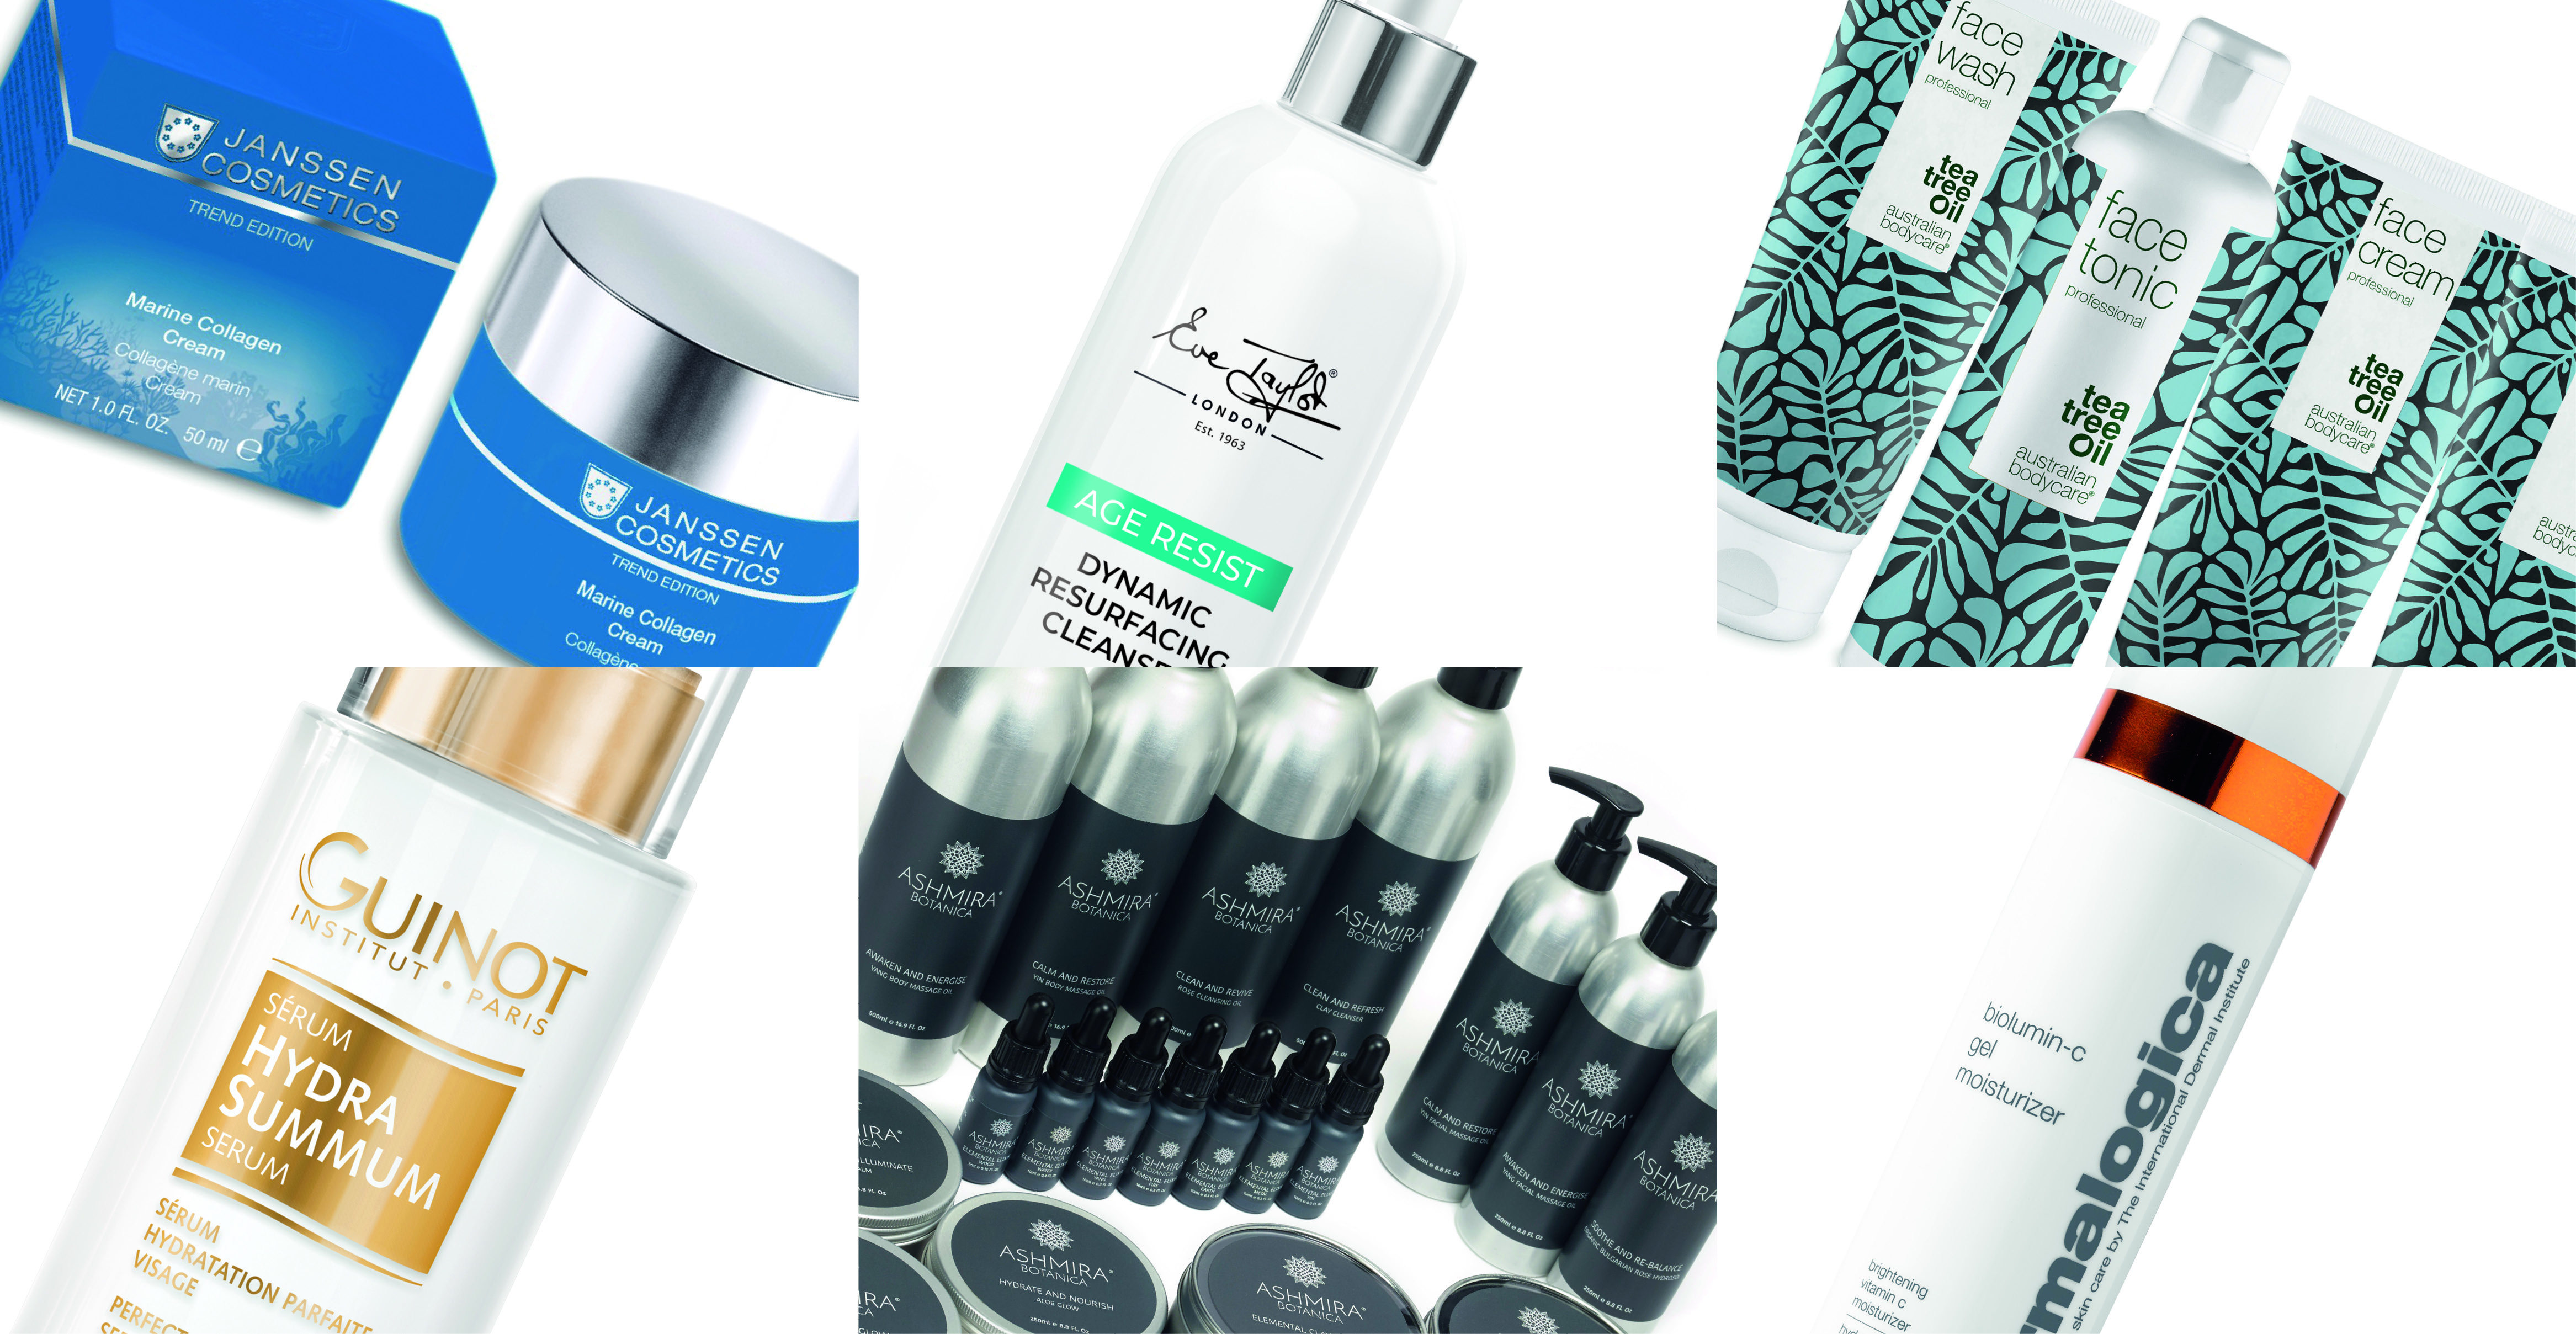 PB London skincare products round-up